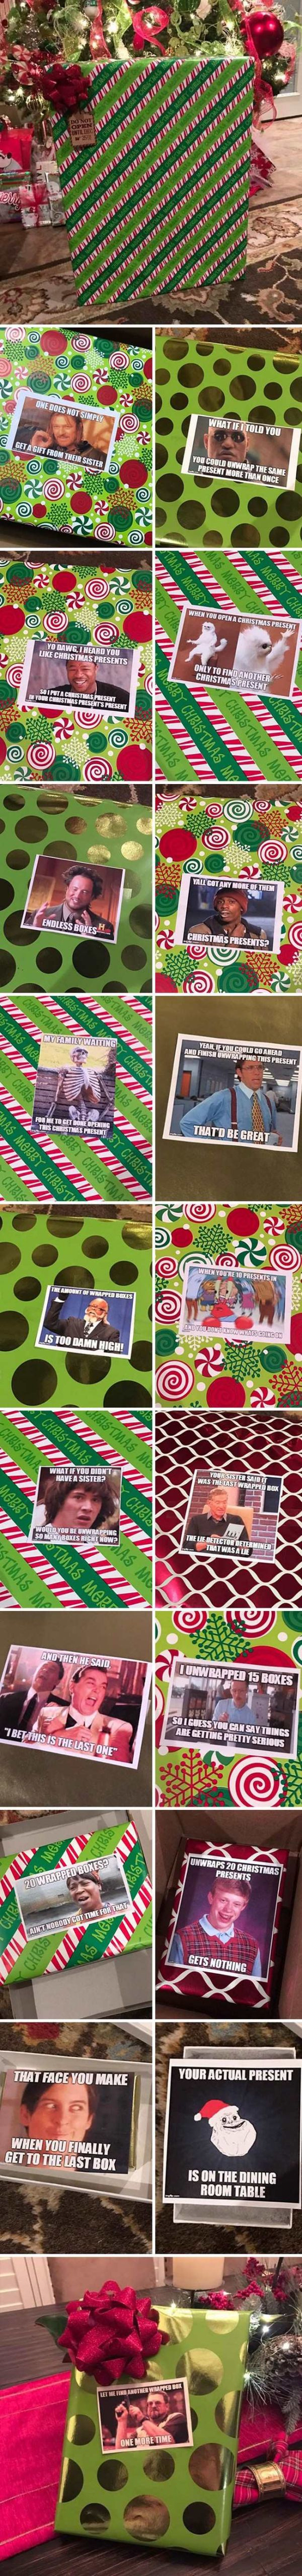 Hilarious Christmas Gifts That Will Crack You Up